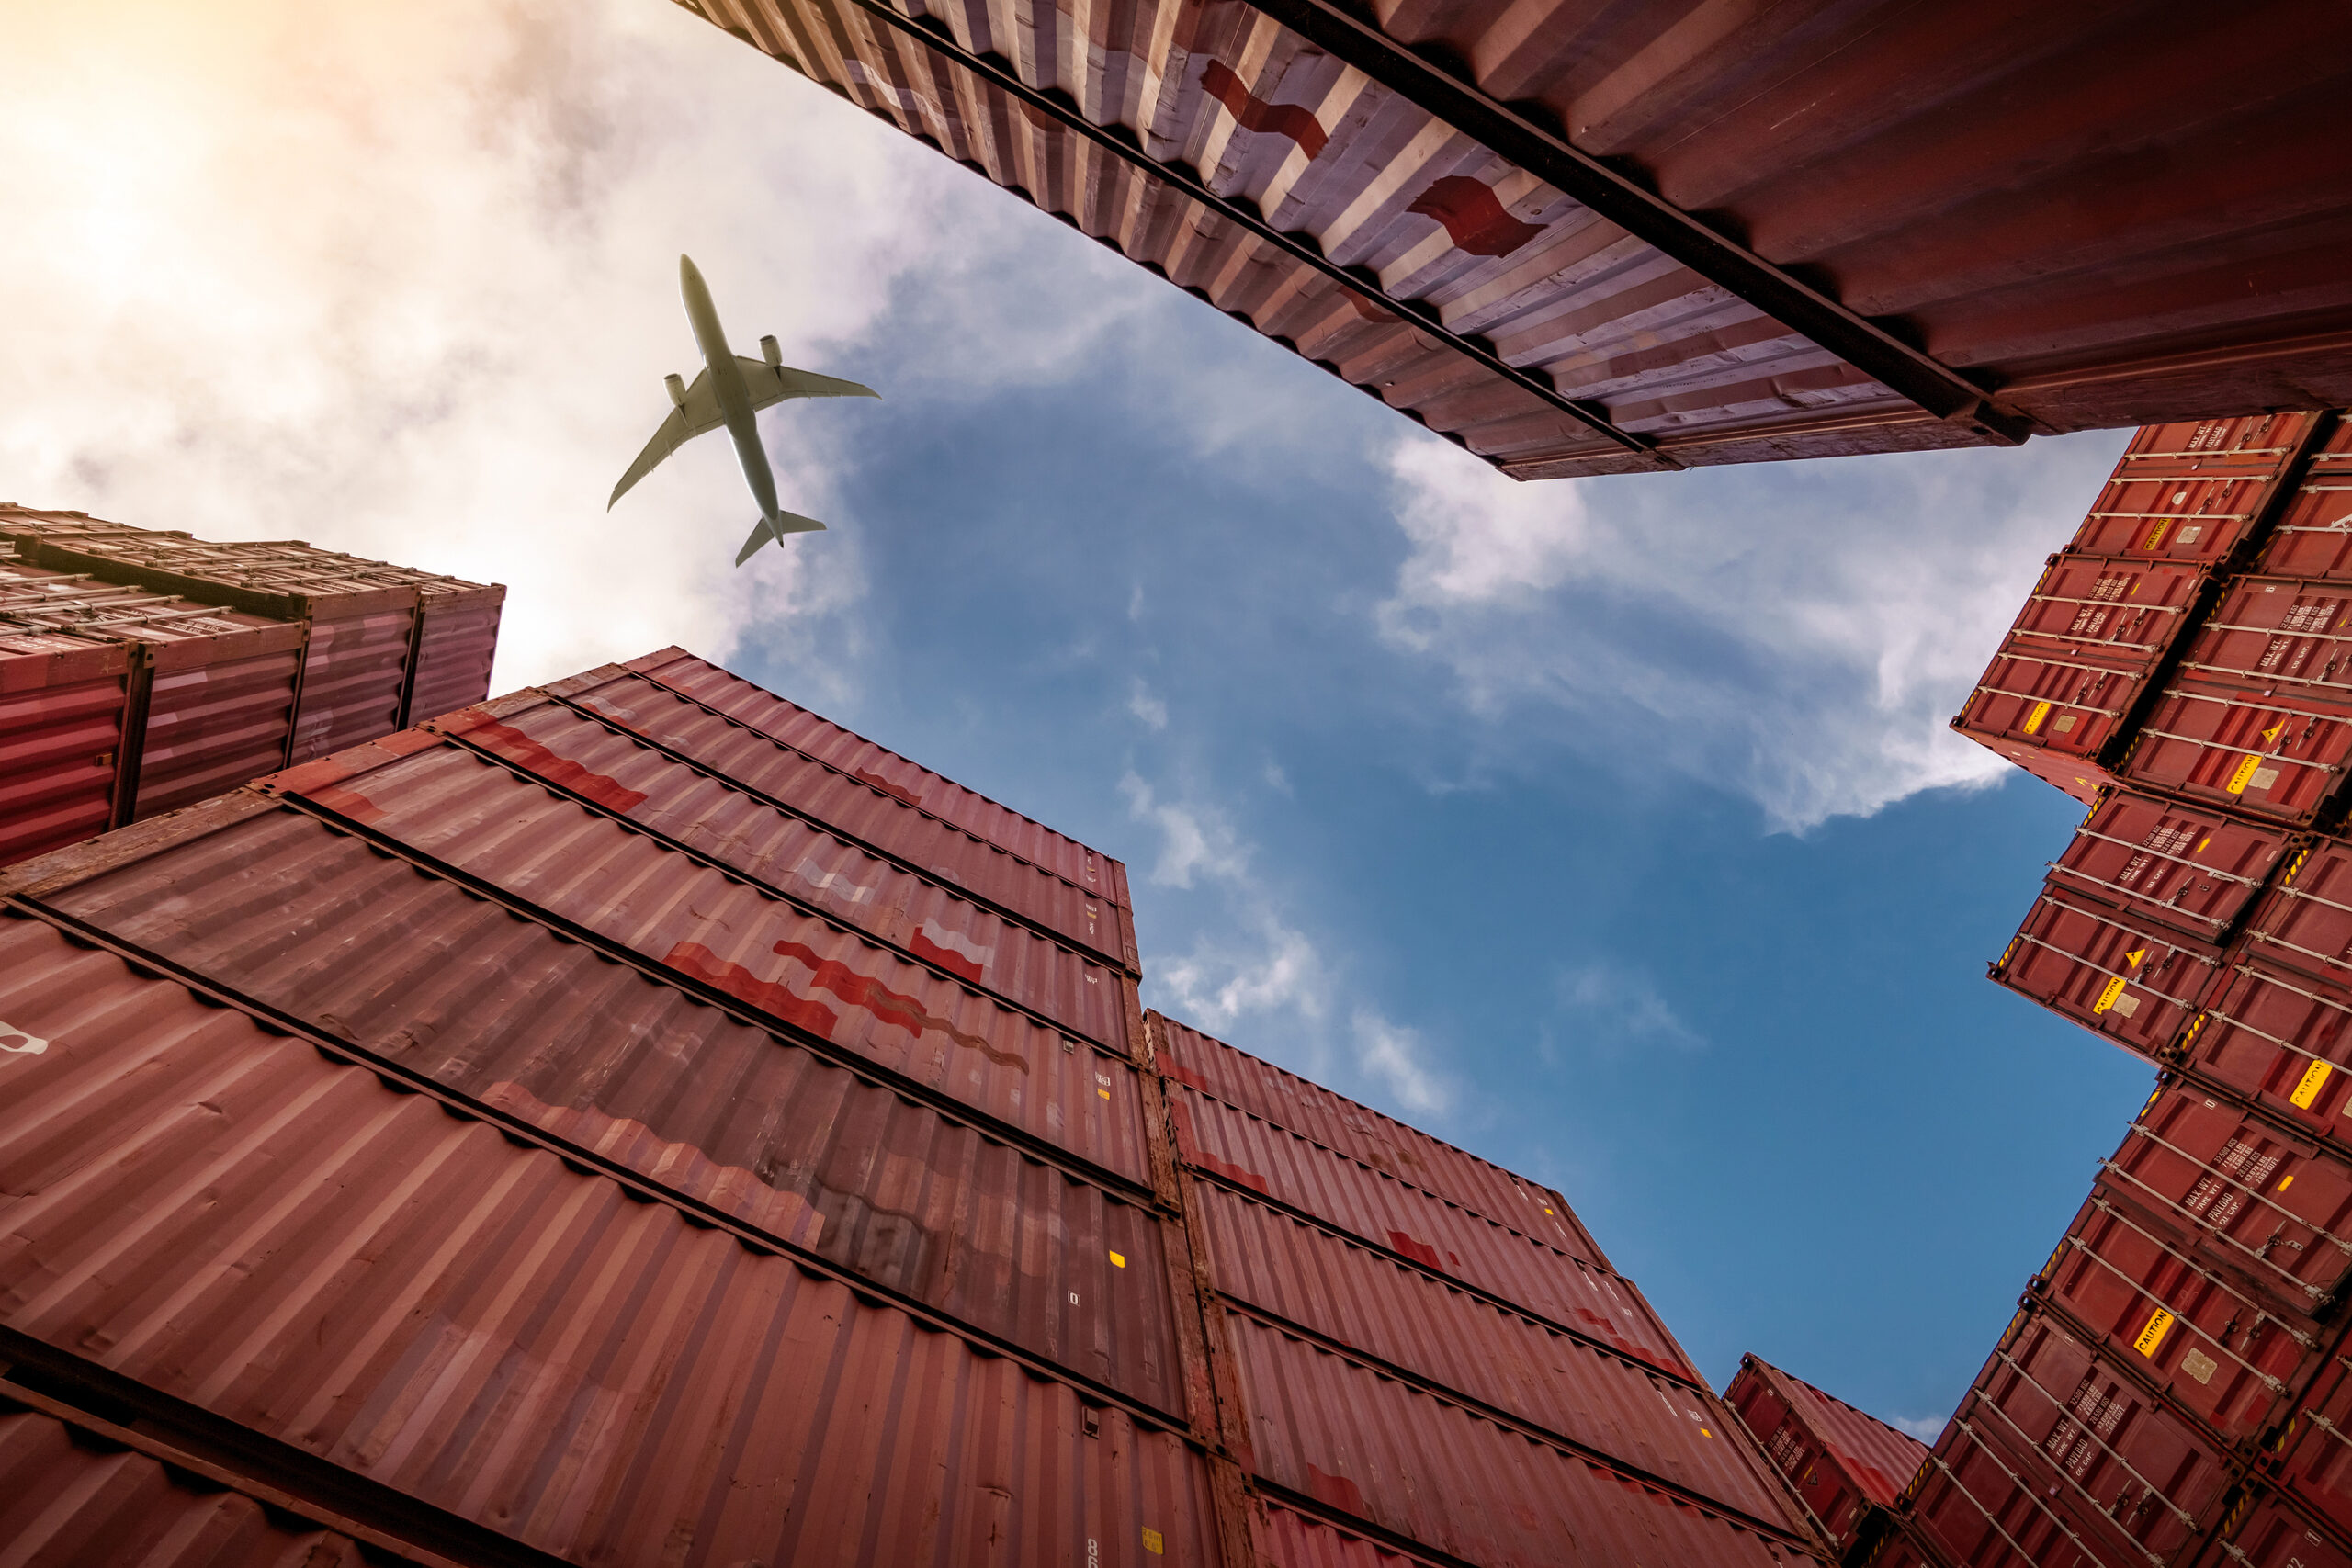 Airplane flying image n the sky above storage containers